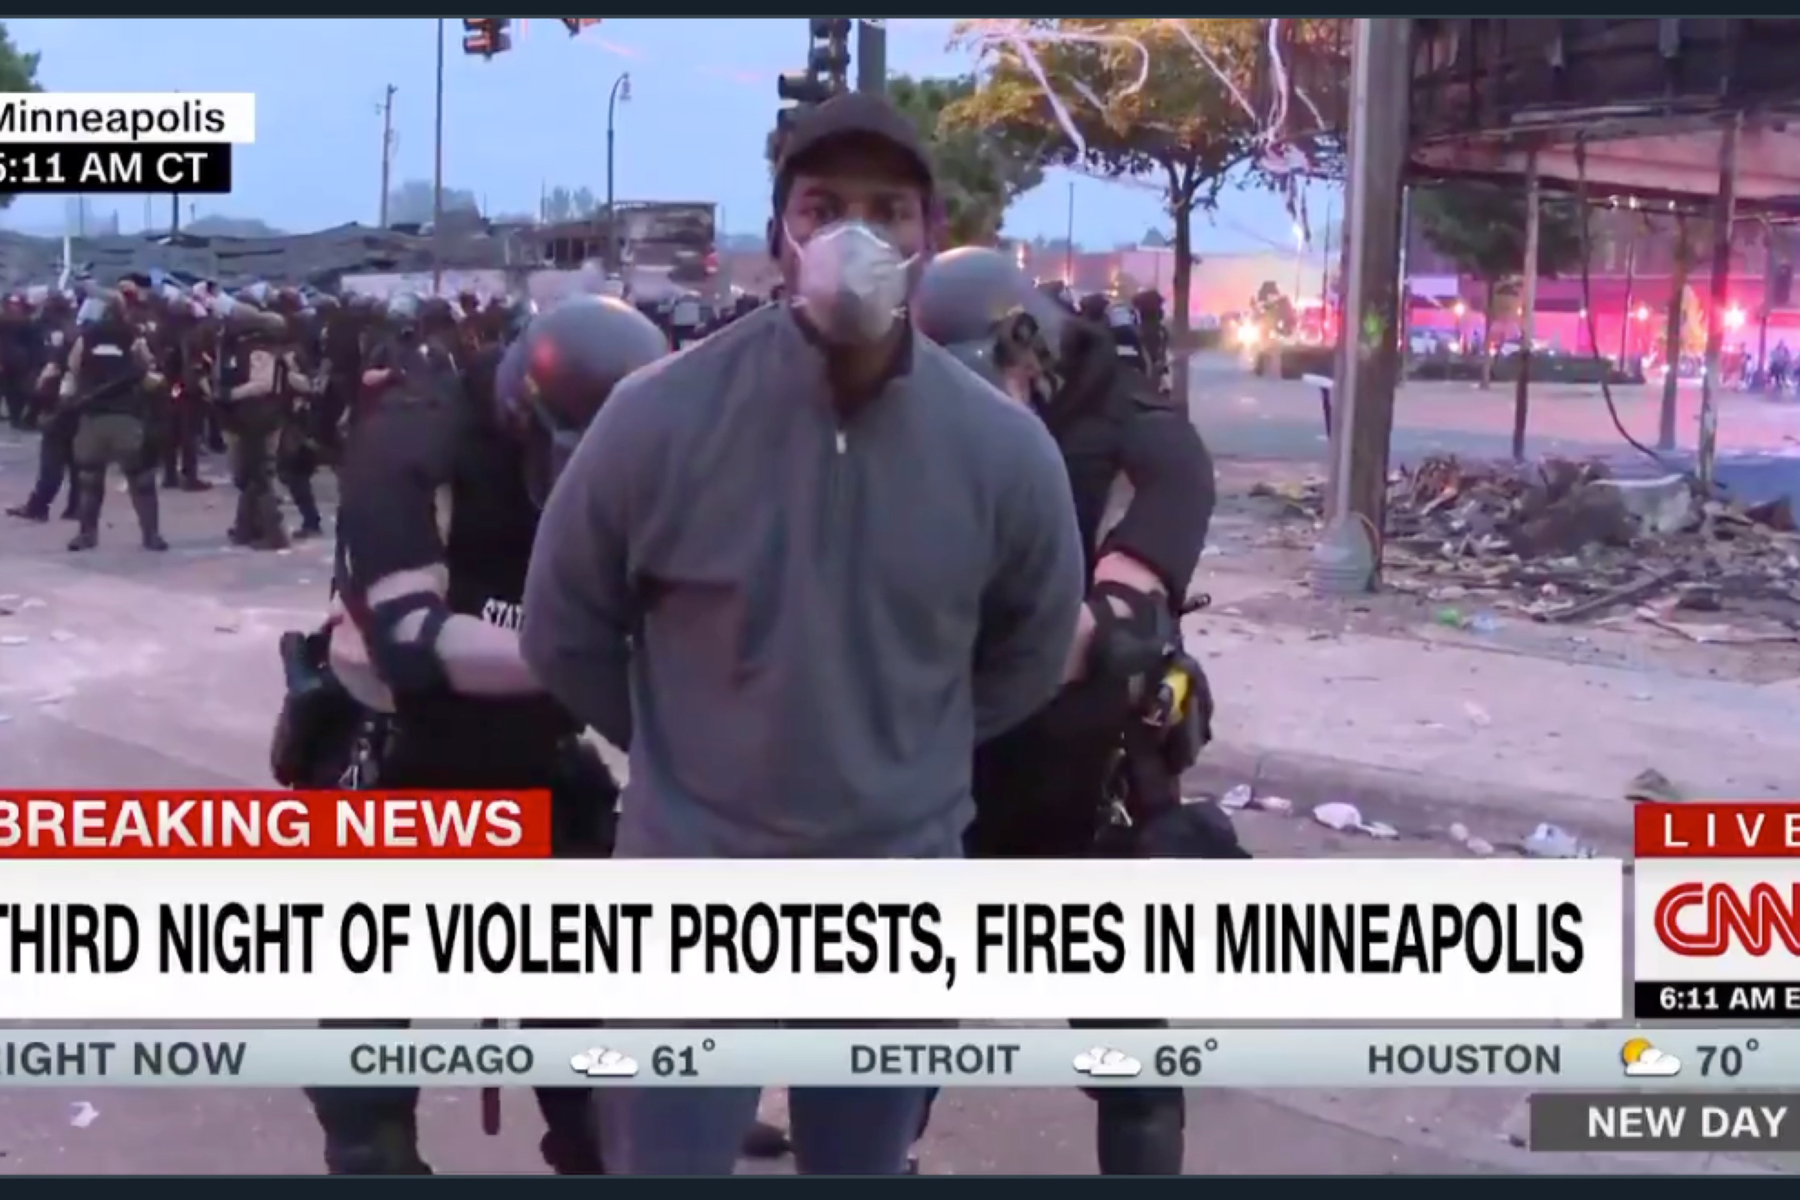 CNN Reporters Arrested For Covering Protests in Minnesota